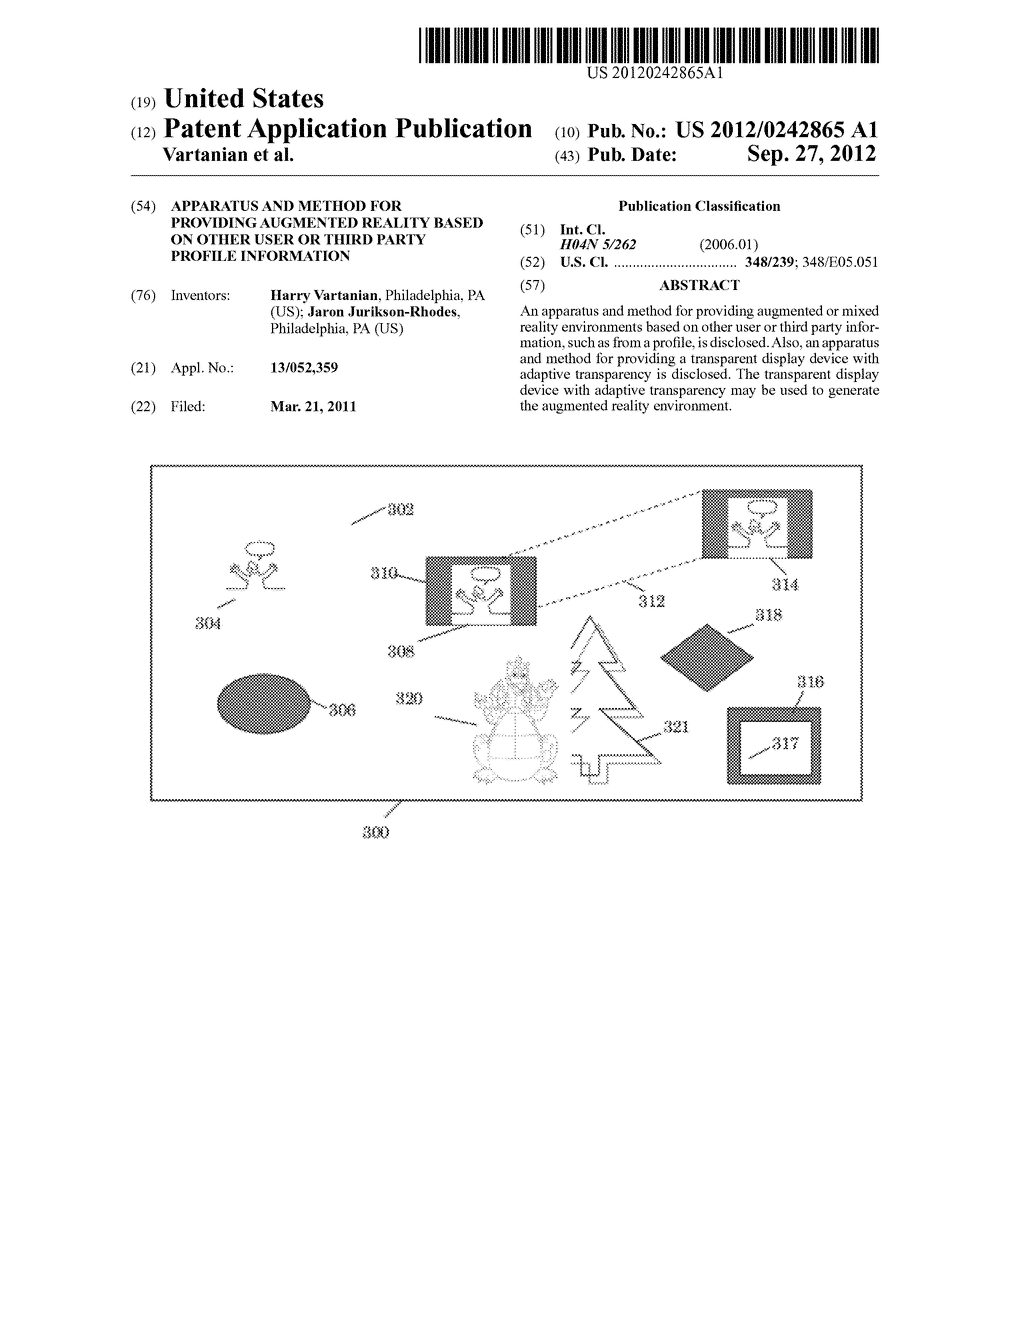 APPARATUS AND METHOD FOR PROVIDING AUGMENTED REALITY BASED ON OTHER USER     OR THIRD PARTY PROFILE INFORMATION - diagram, schematic, and image 01